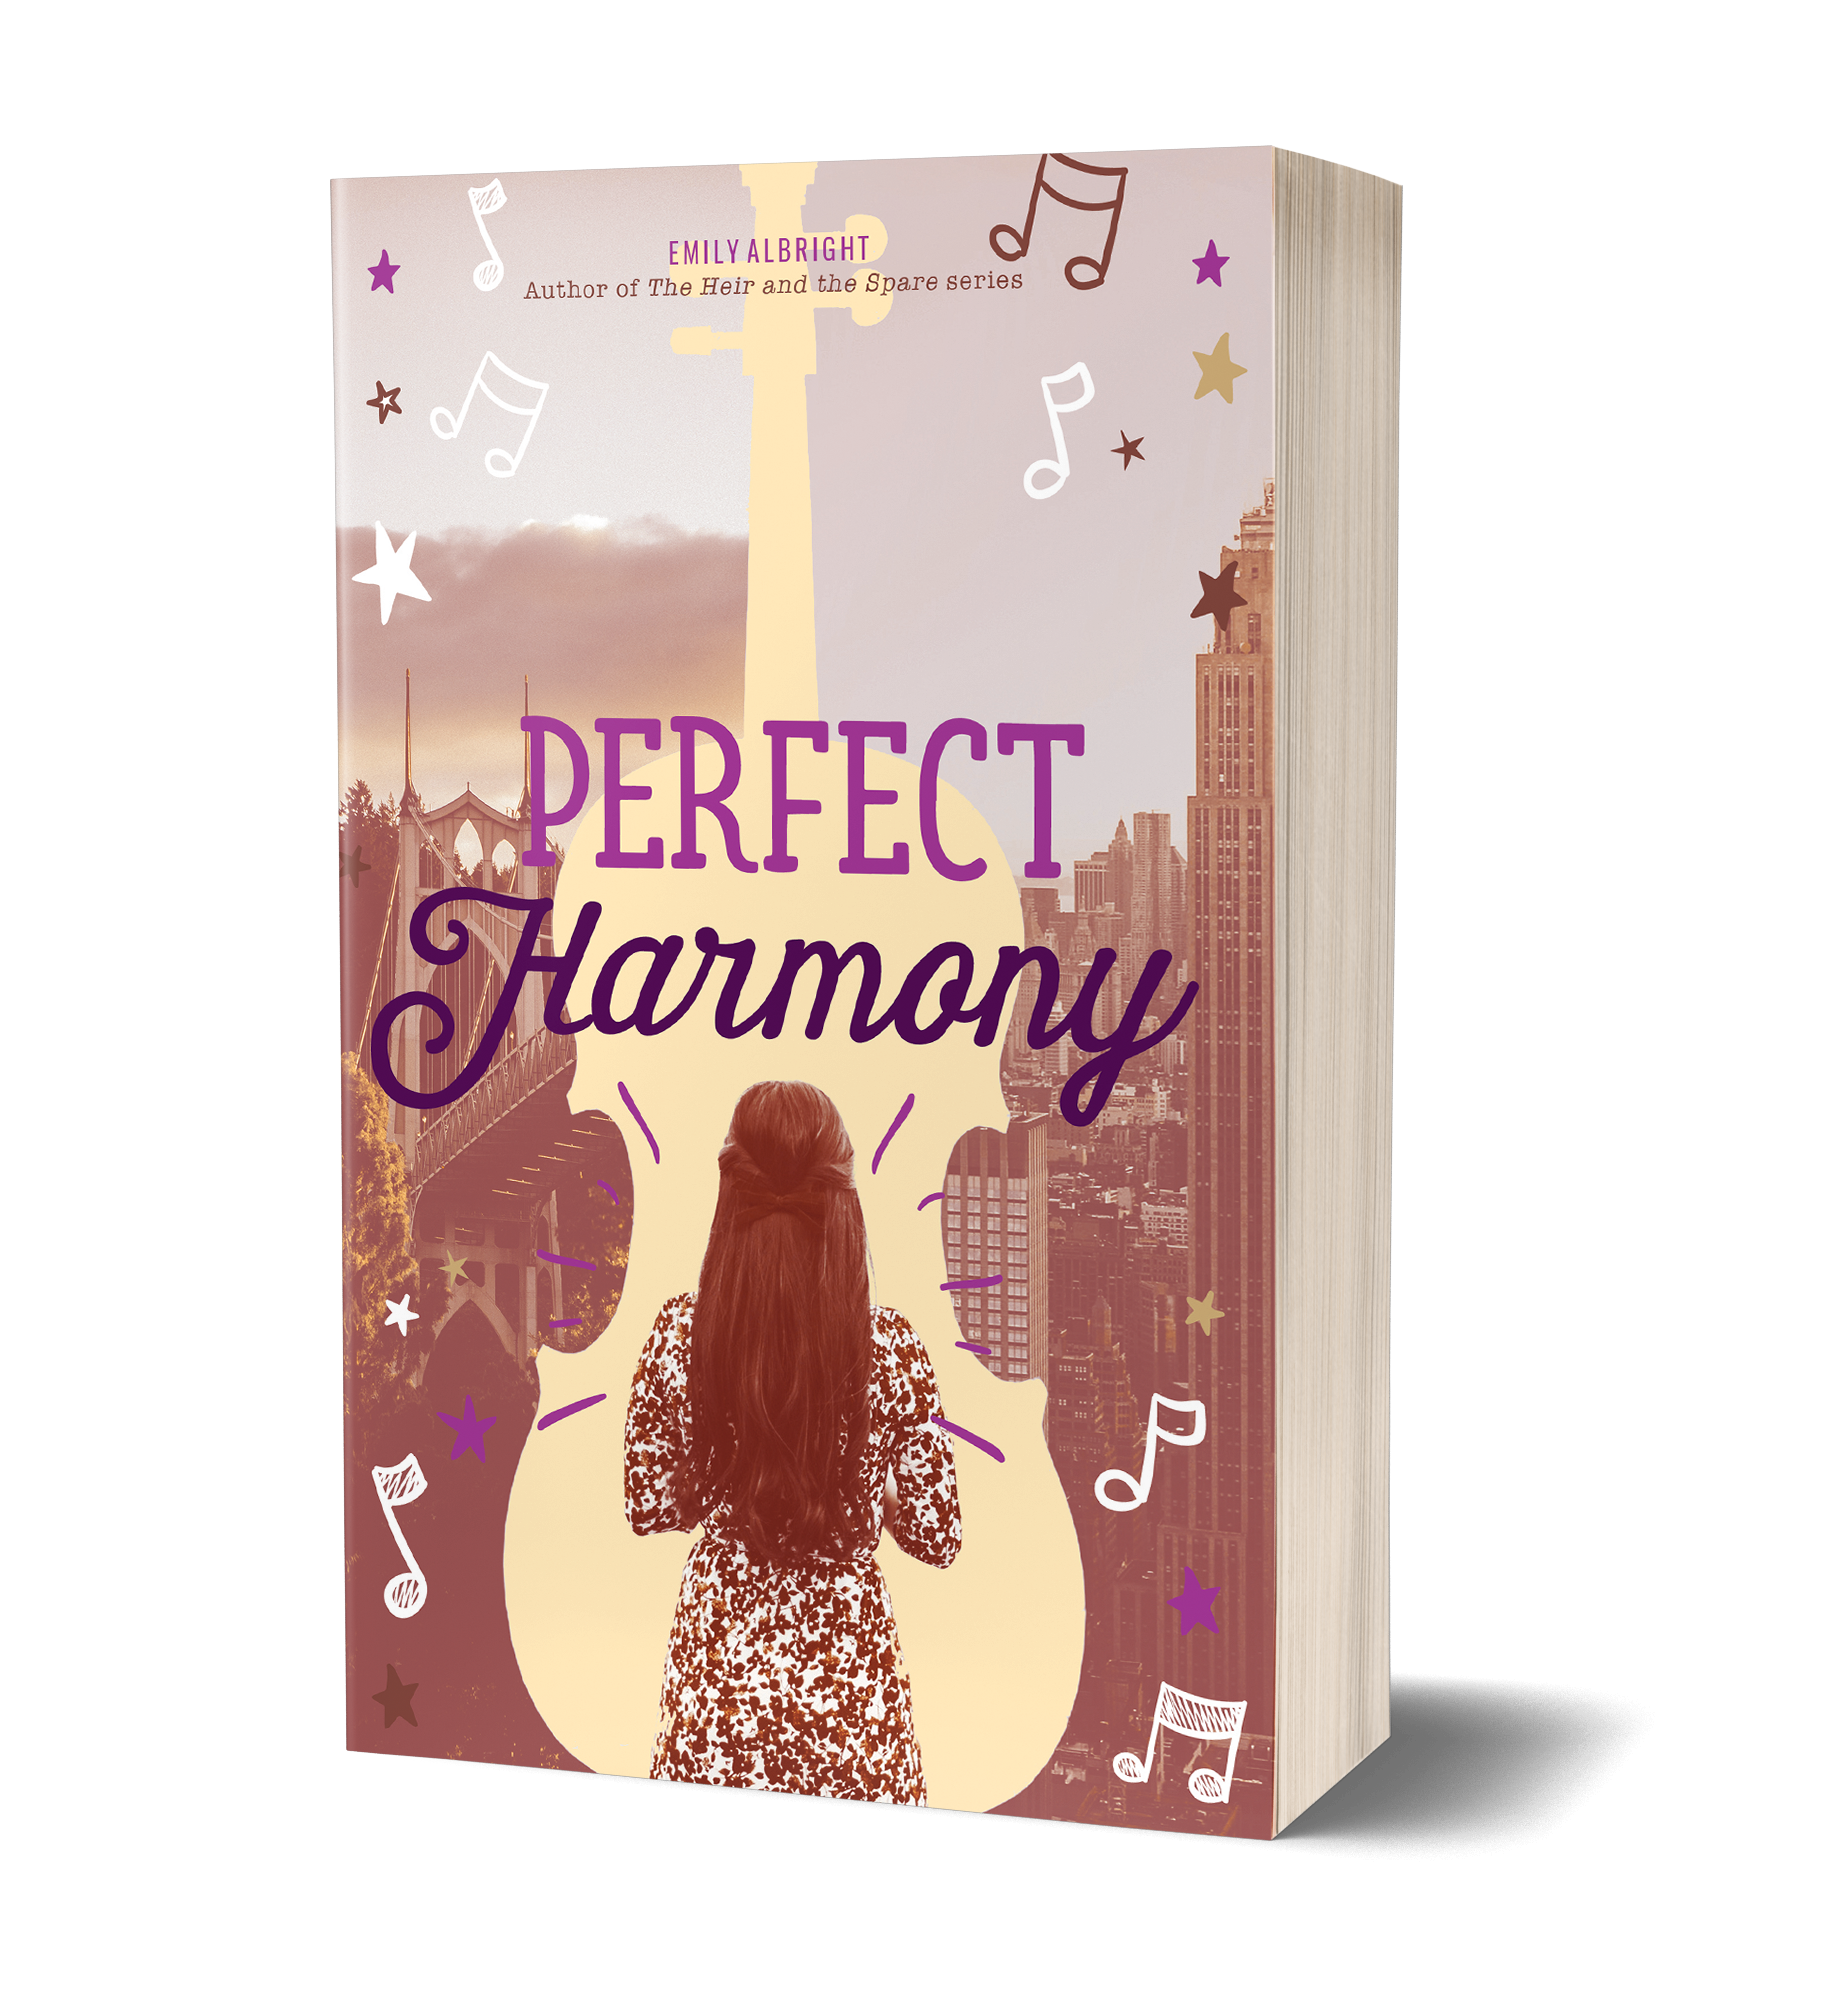 Perfect harmony book cover, back of a girl wearing a dress, long hair, standing in the silhouette of a drawn cello, with a city in the background